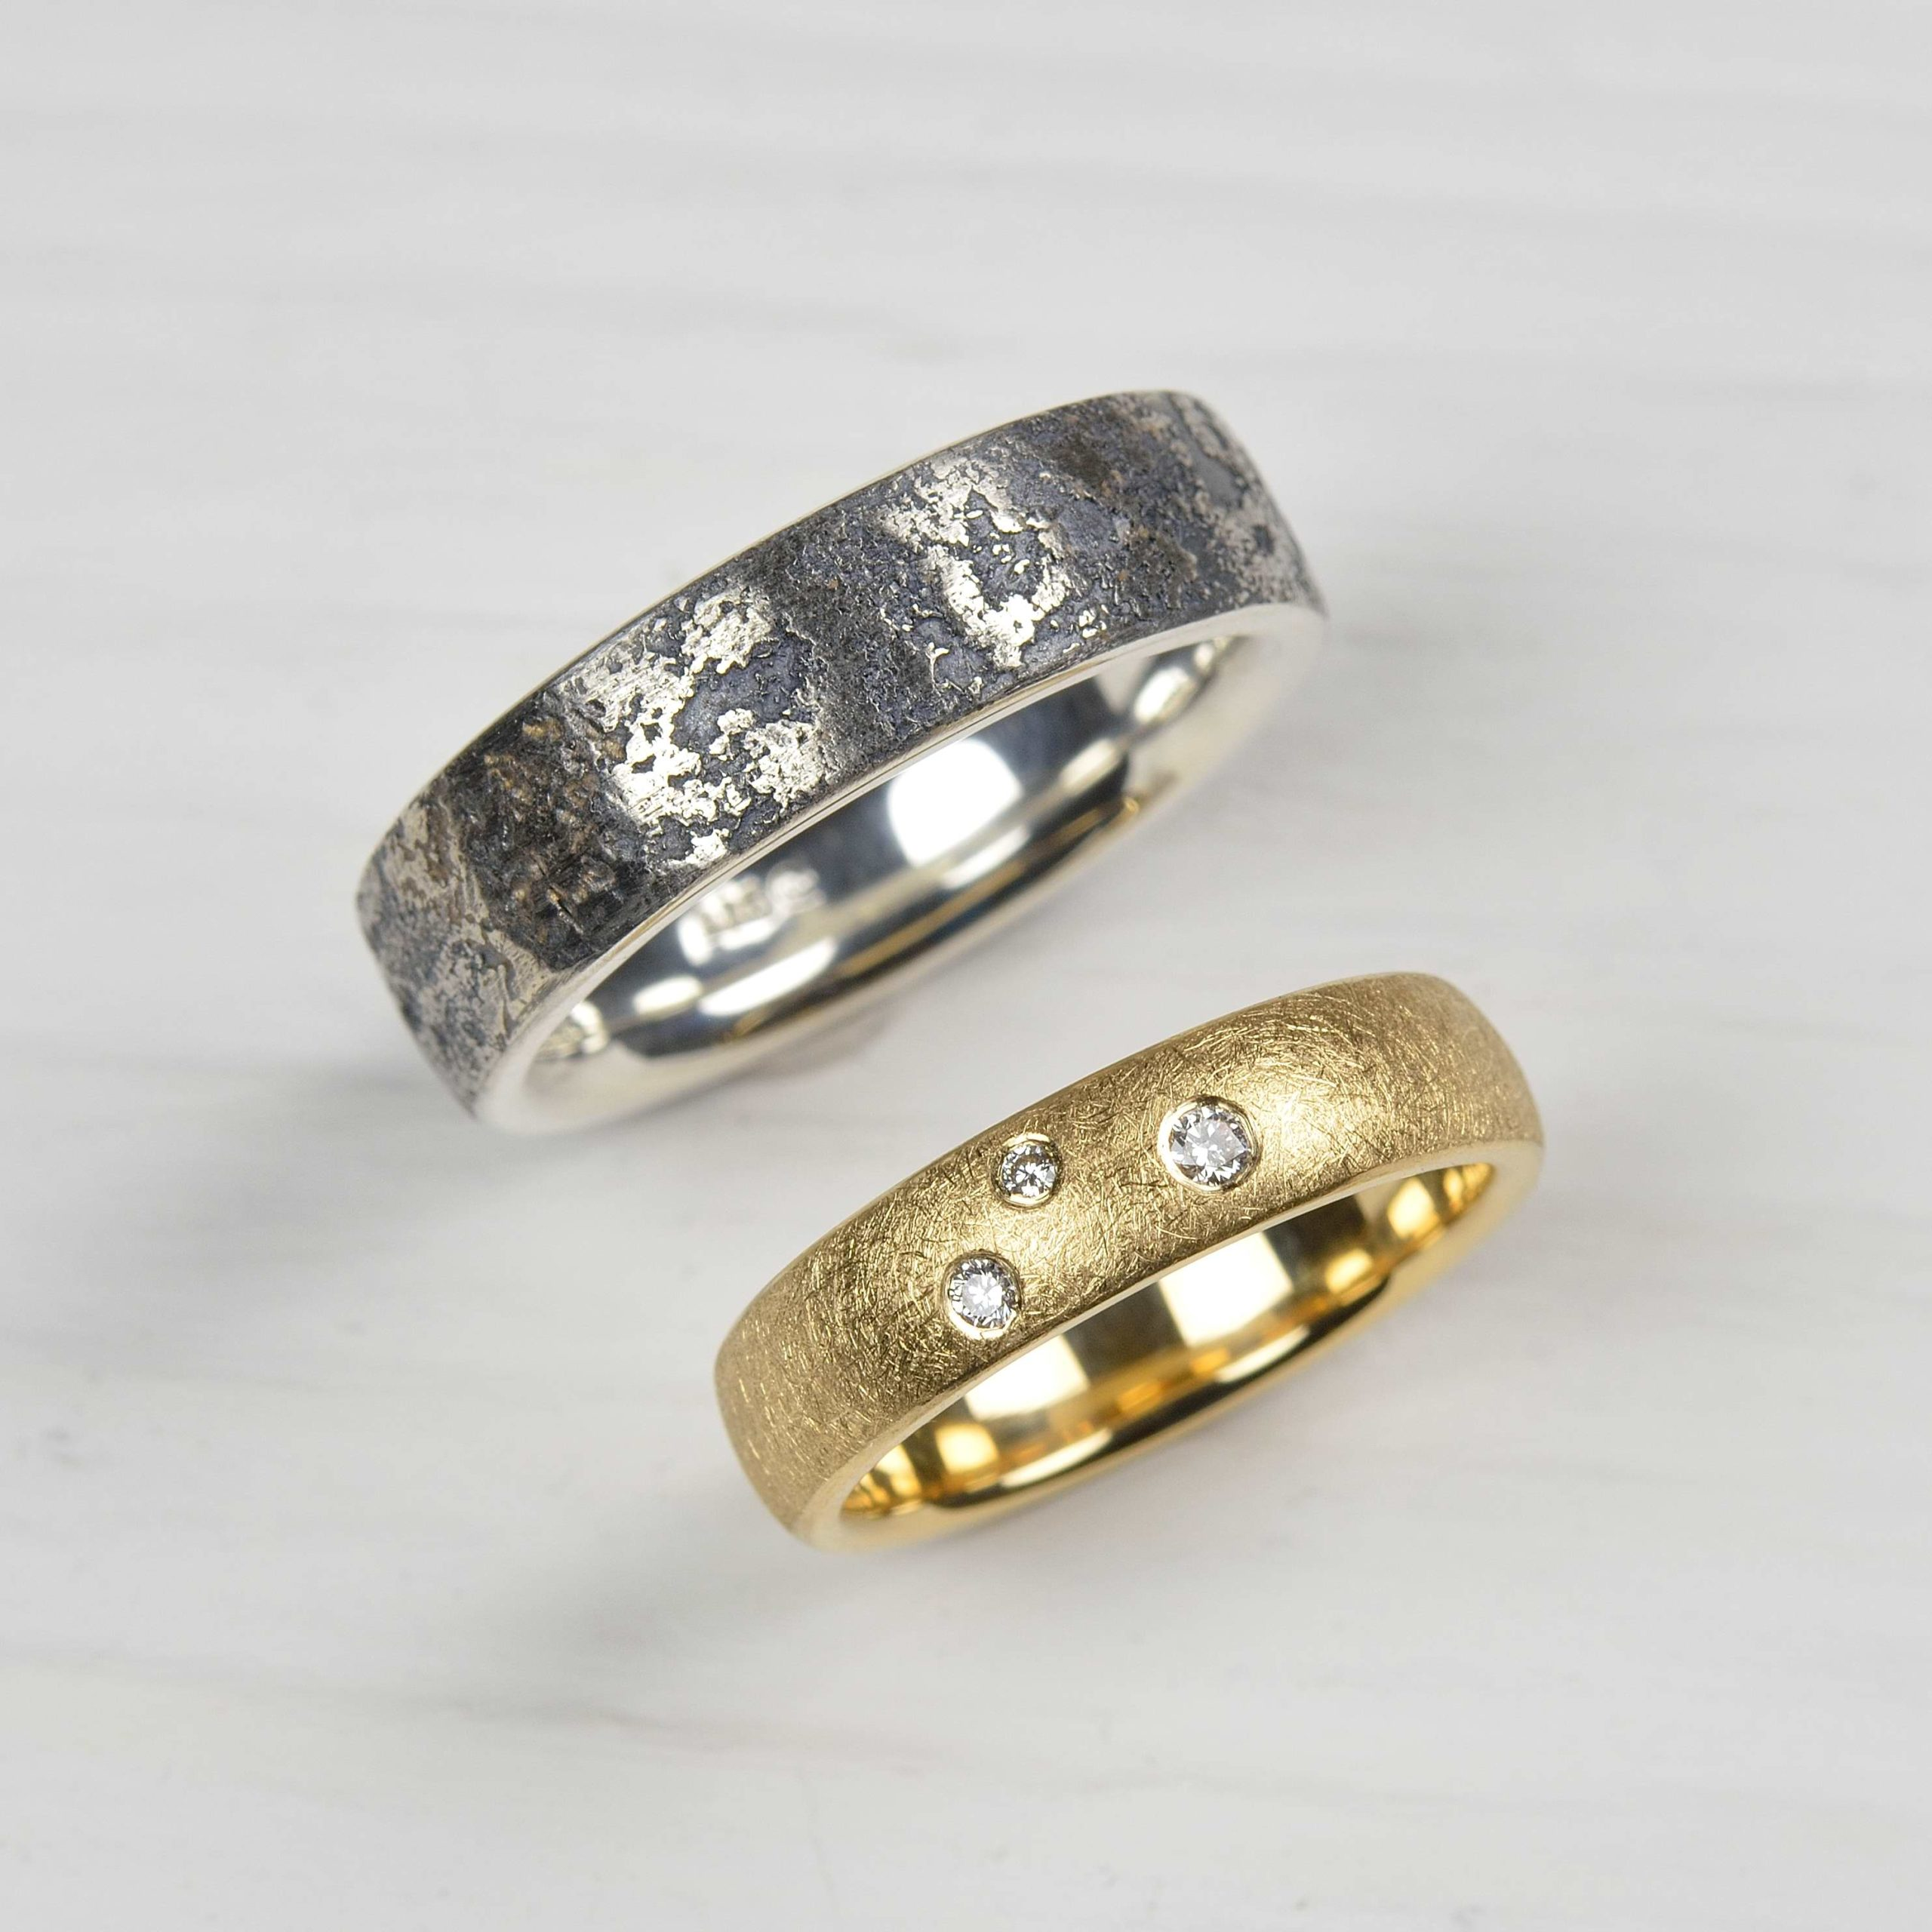 sterling silver and platinum ring, 18ct gold ring with diamonds